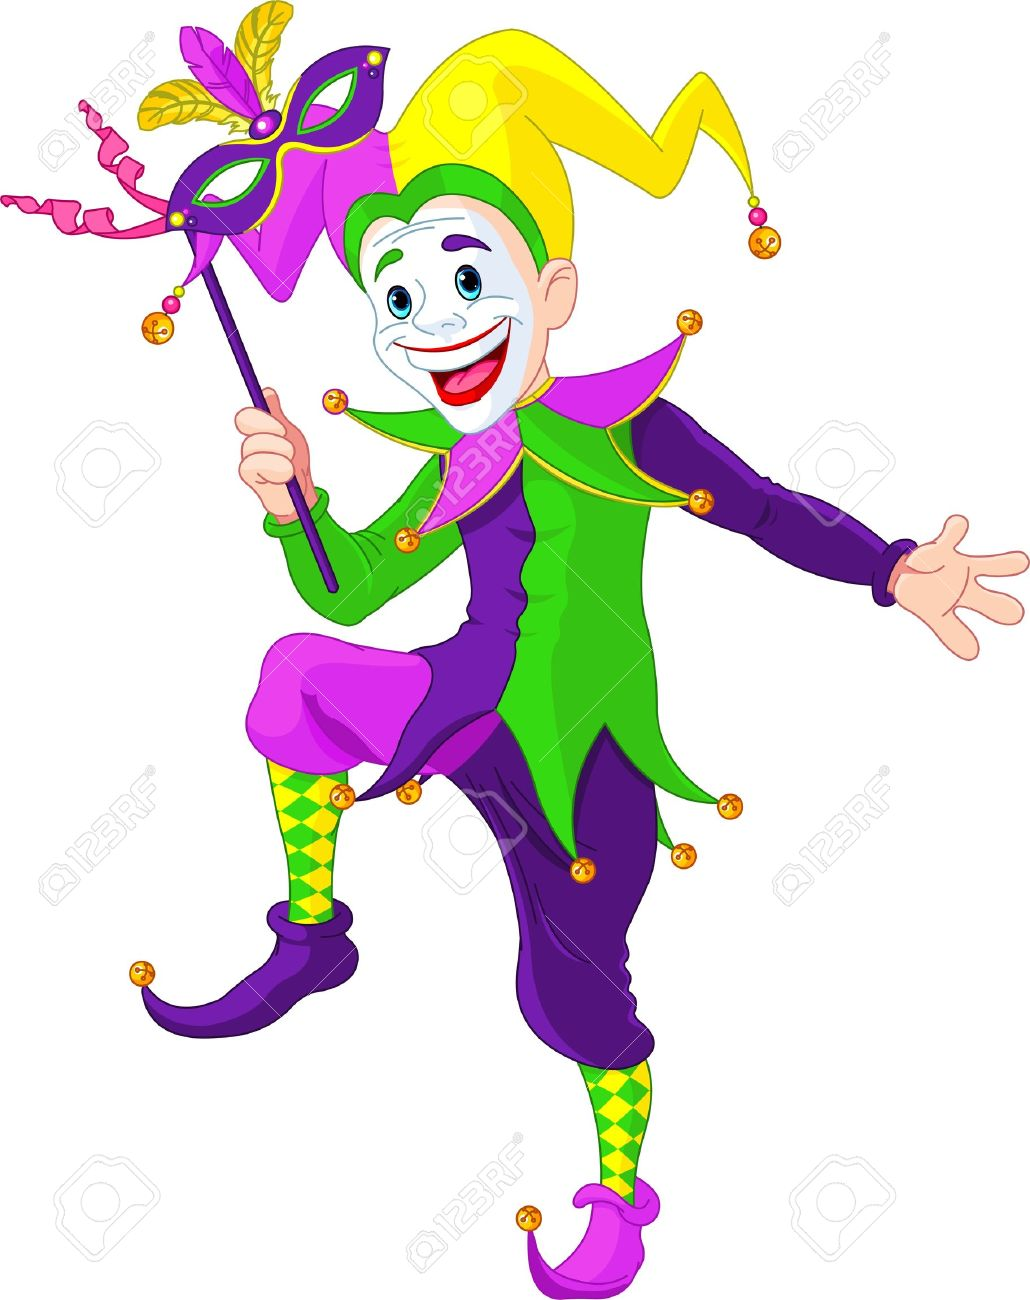 clip art illustration of a cartoon mardi gras jester holding rh 123rf com court jester clipart jester clipart free